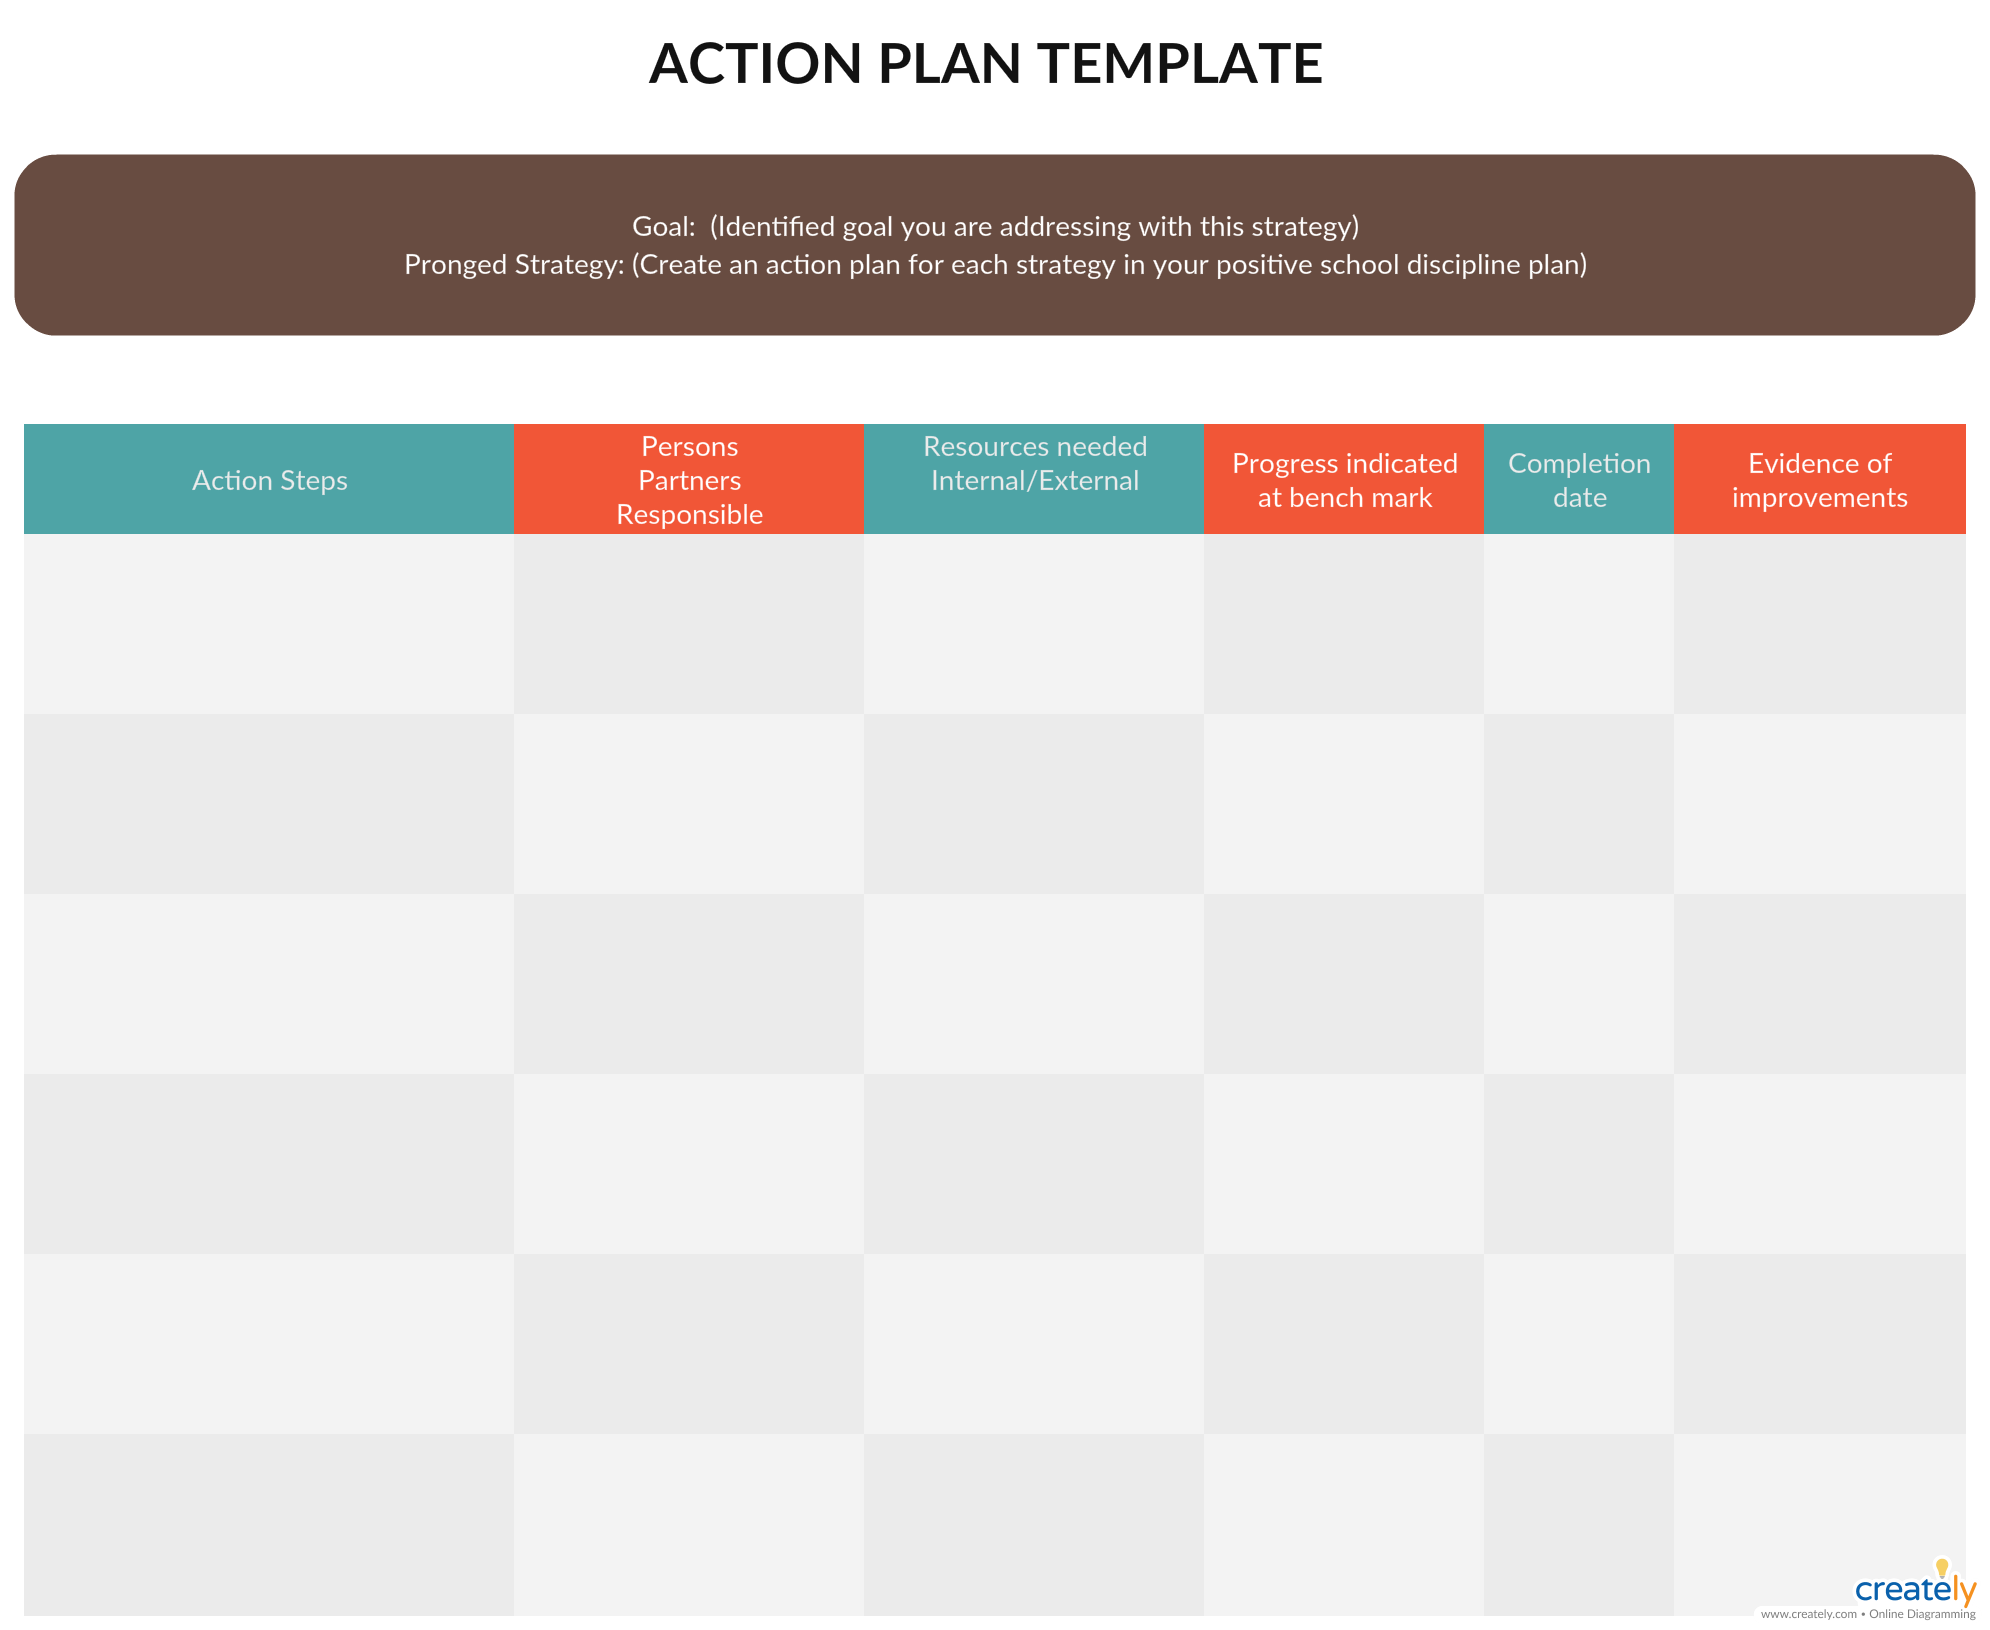 An Action Plan Is A Detailed Plan Outlining Actions Needed To